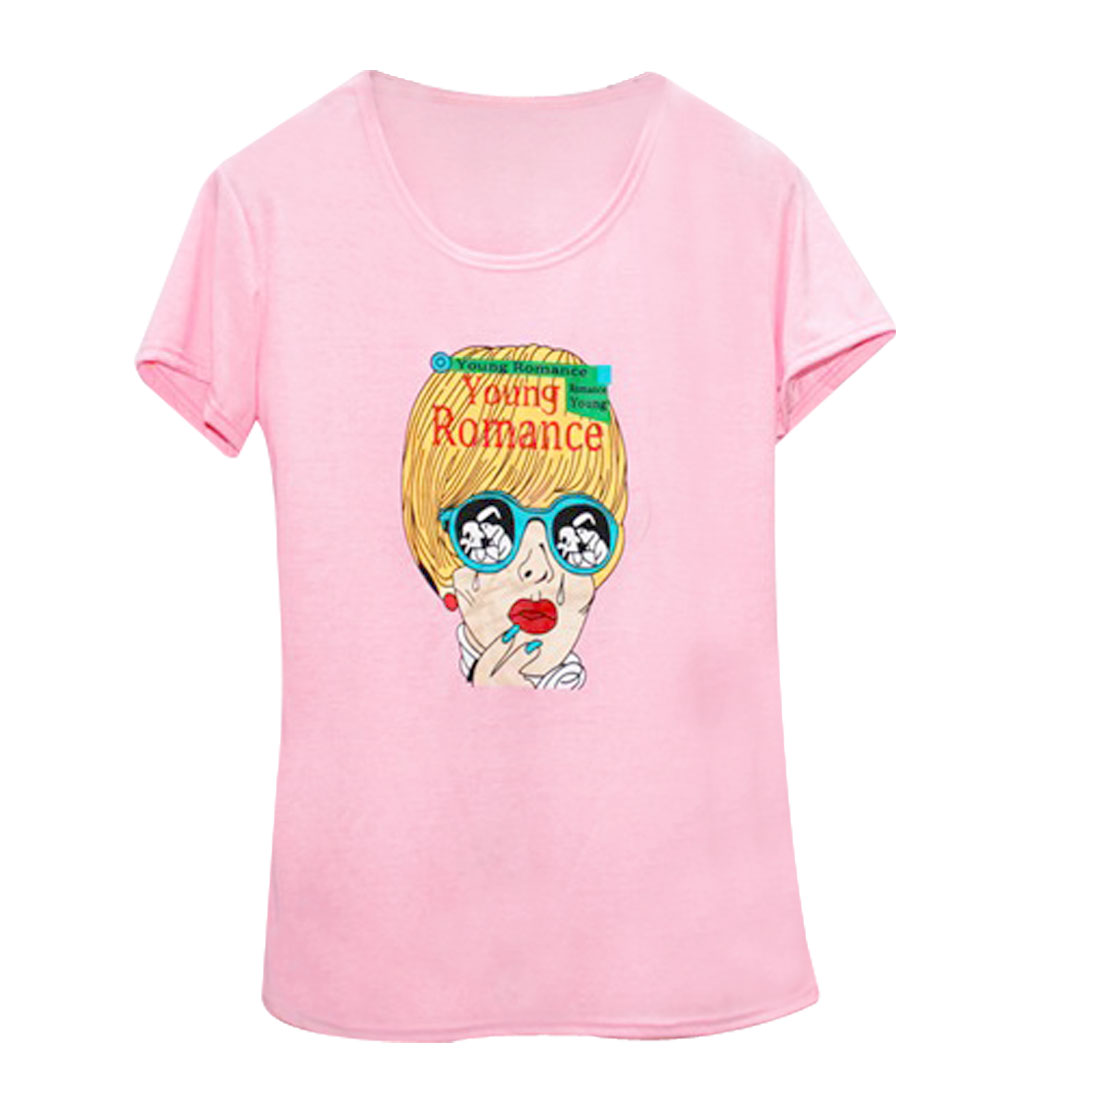 Women Short Sleeves Crying Glasses Lady Printed T-shirt Pink XS